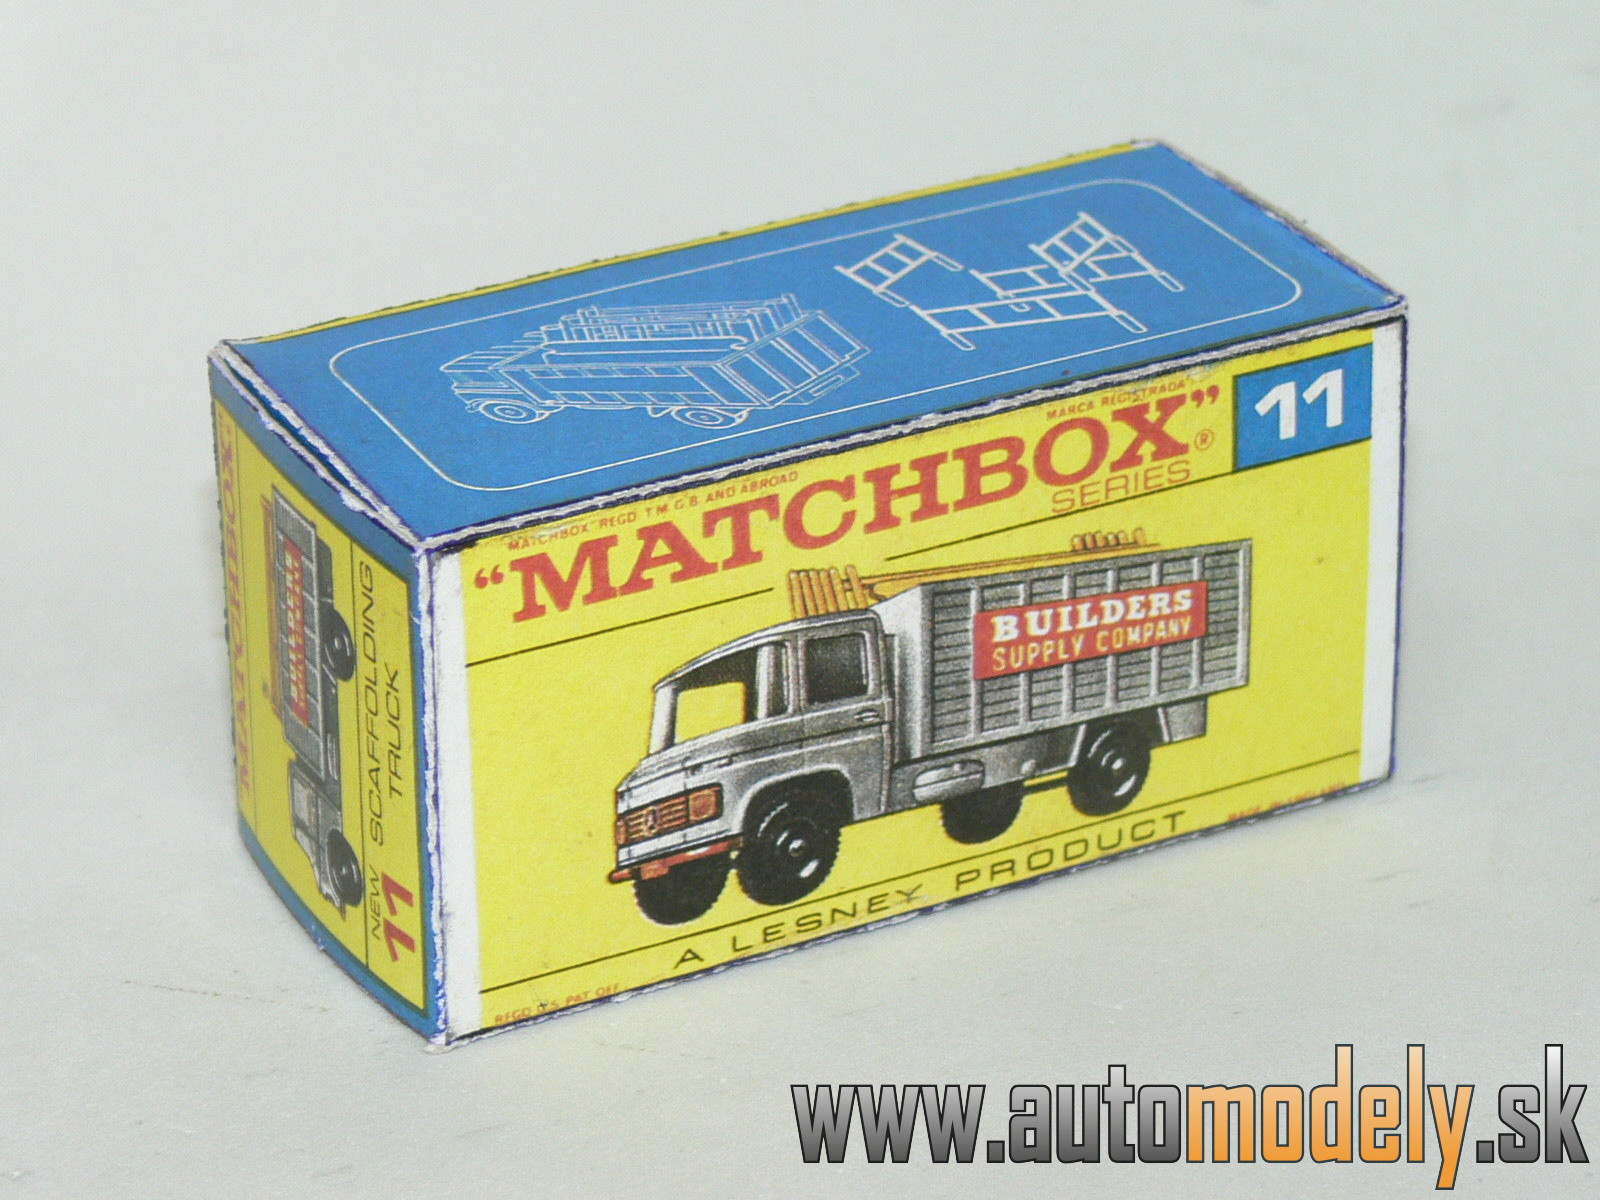 Replika Box - Matchbox Regular Wheels - No.11 Scaffolding Truck